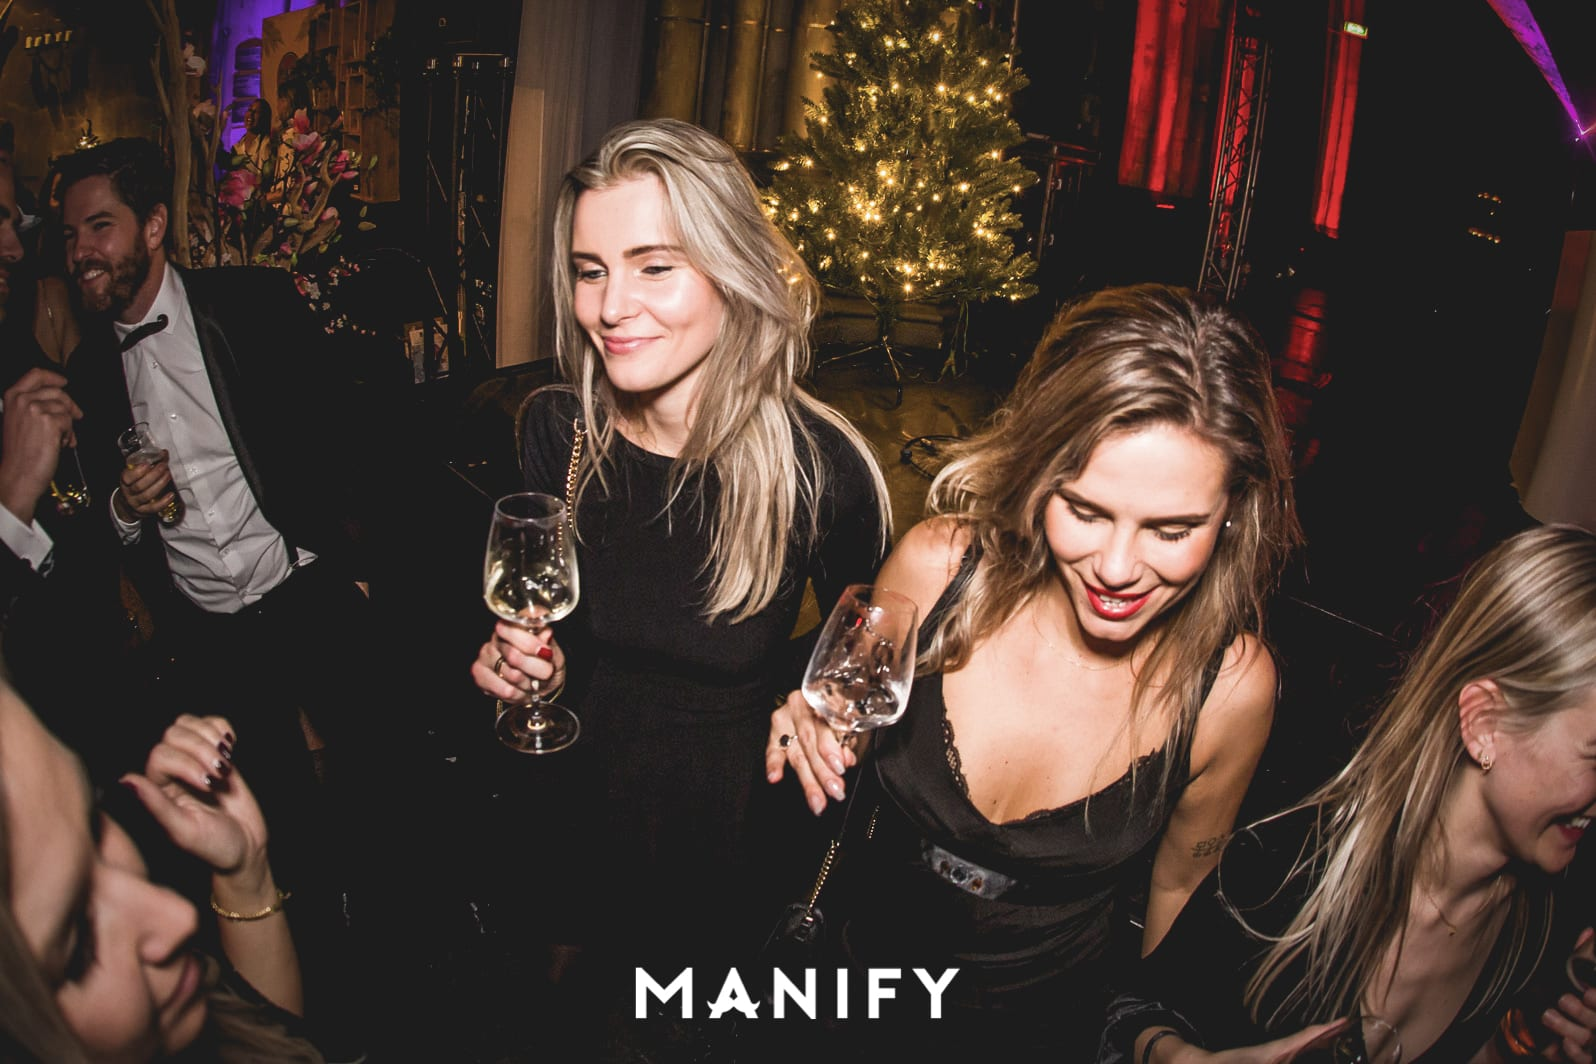 MANIFY_Out_of_office-Orangerie-06-12-19_WM-108-manify